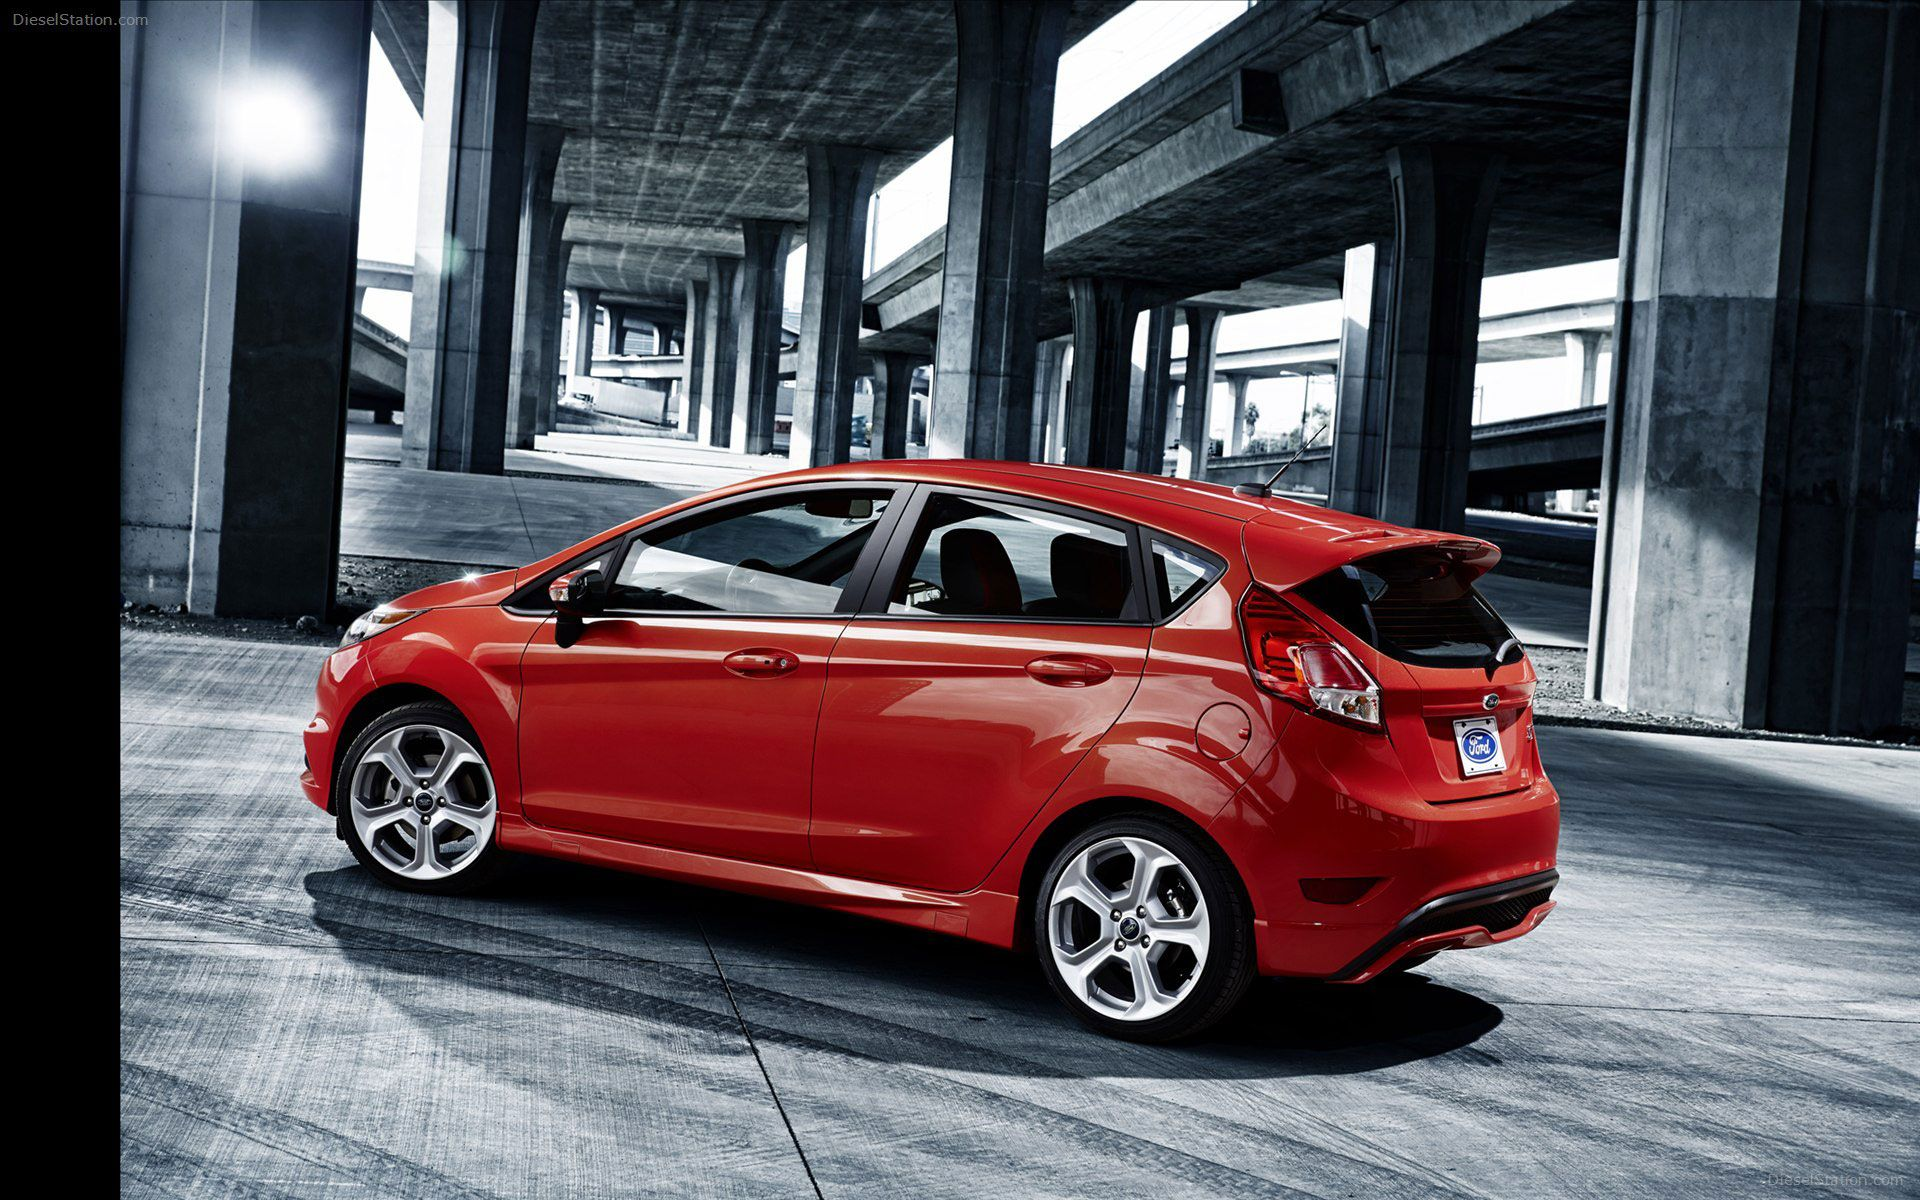 Ford Fiesta St Hd Wallpapers In Hd Ford Fiesta St Ford Fiesta